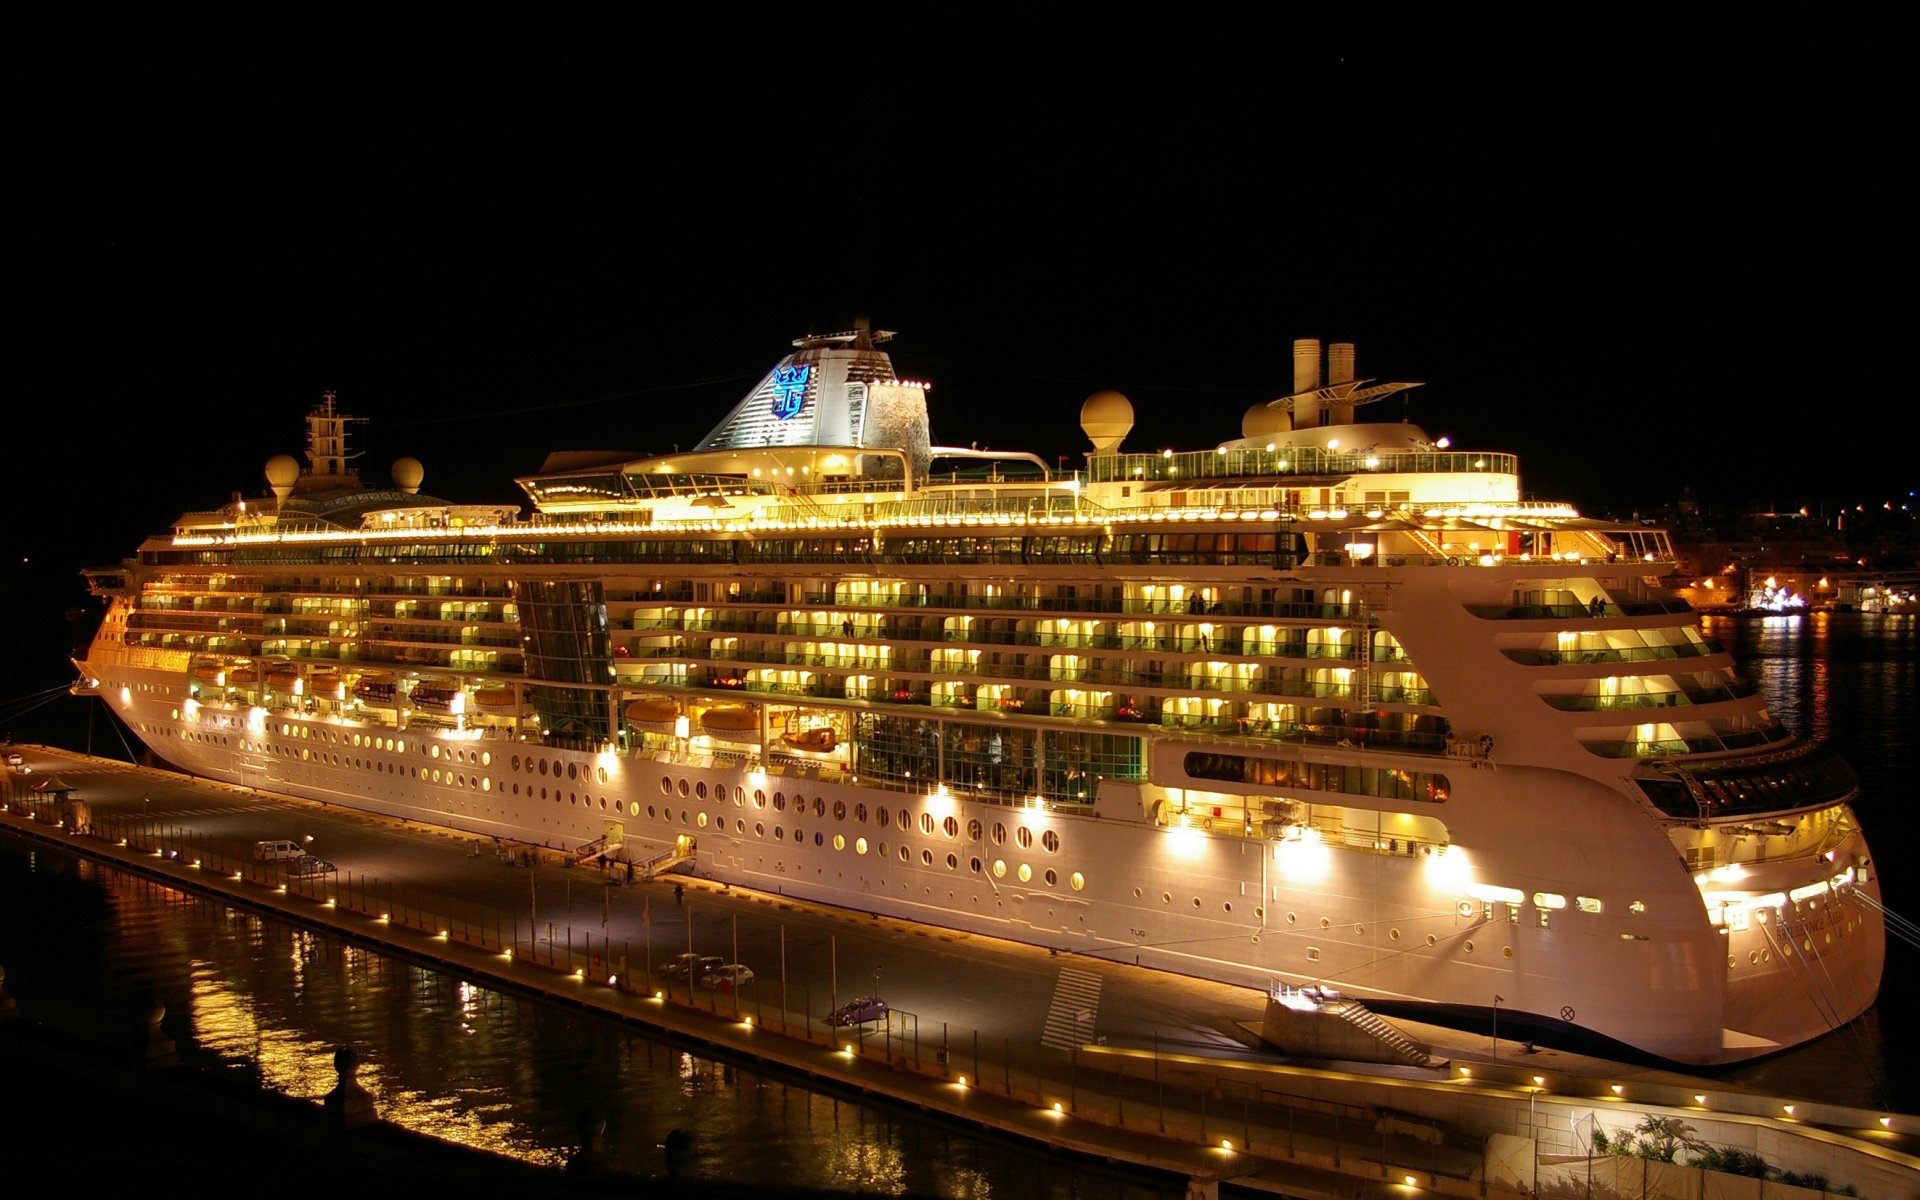 Vehicles - Cruise Ship  Wallpaper